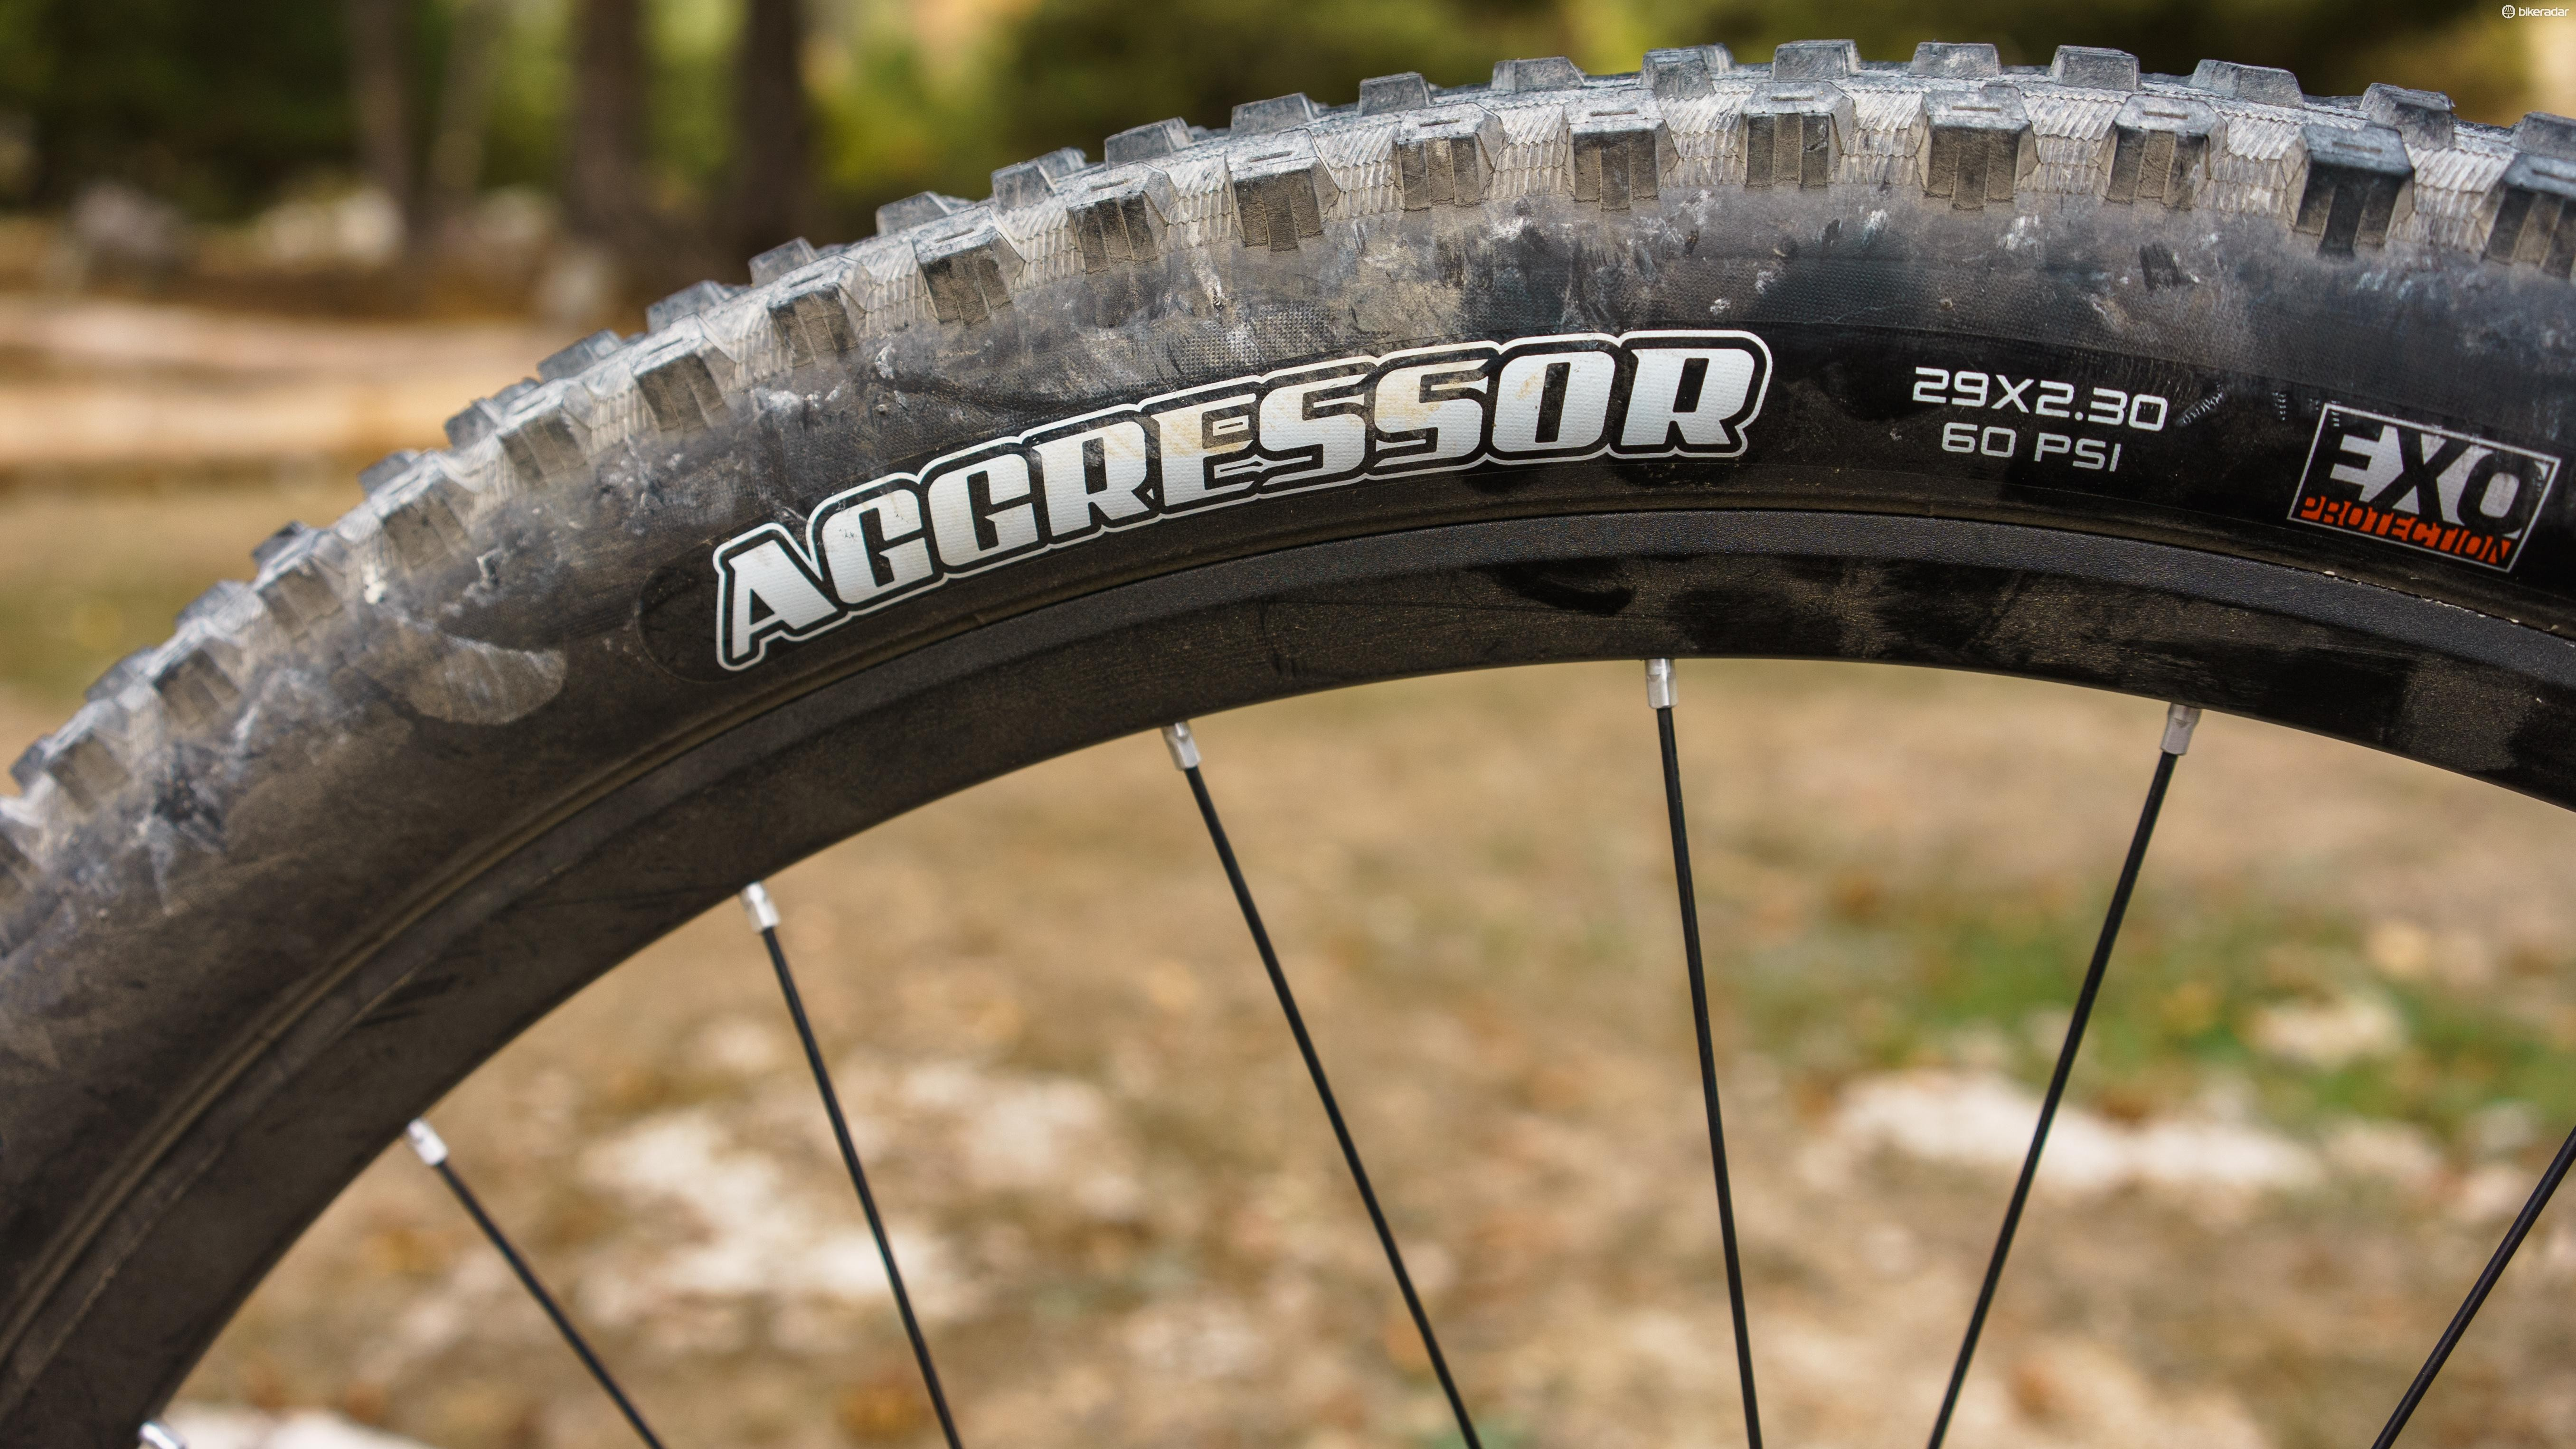 The Maxxis Aggressor is the stock tyre at the back, but you can swap this for other Maxxis rubber when you purchase